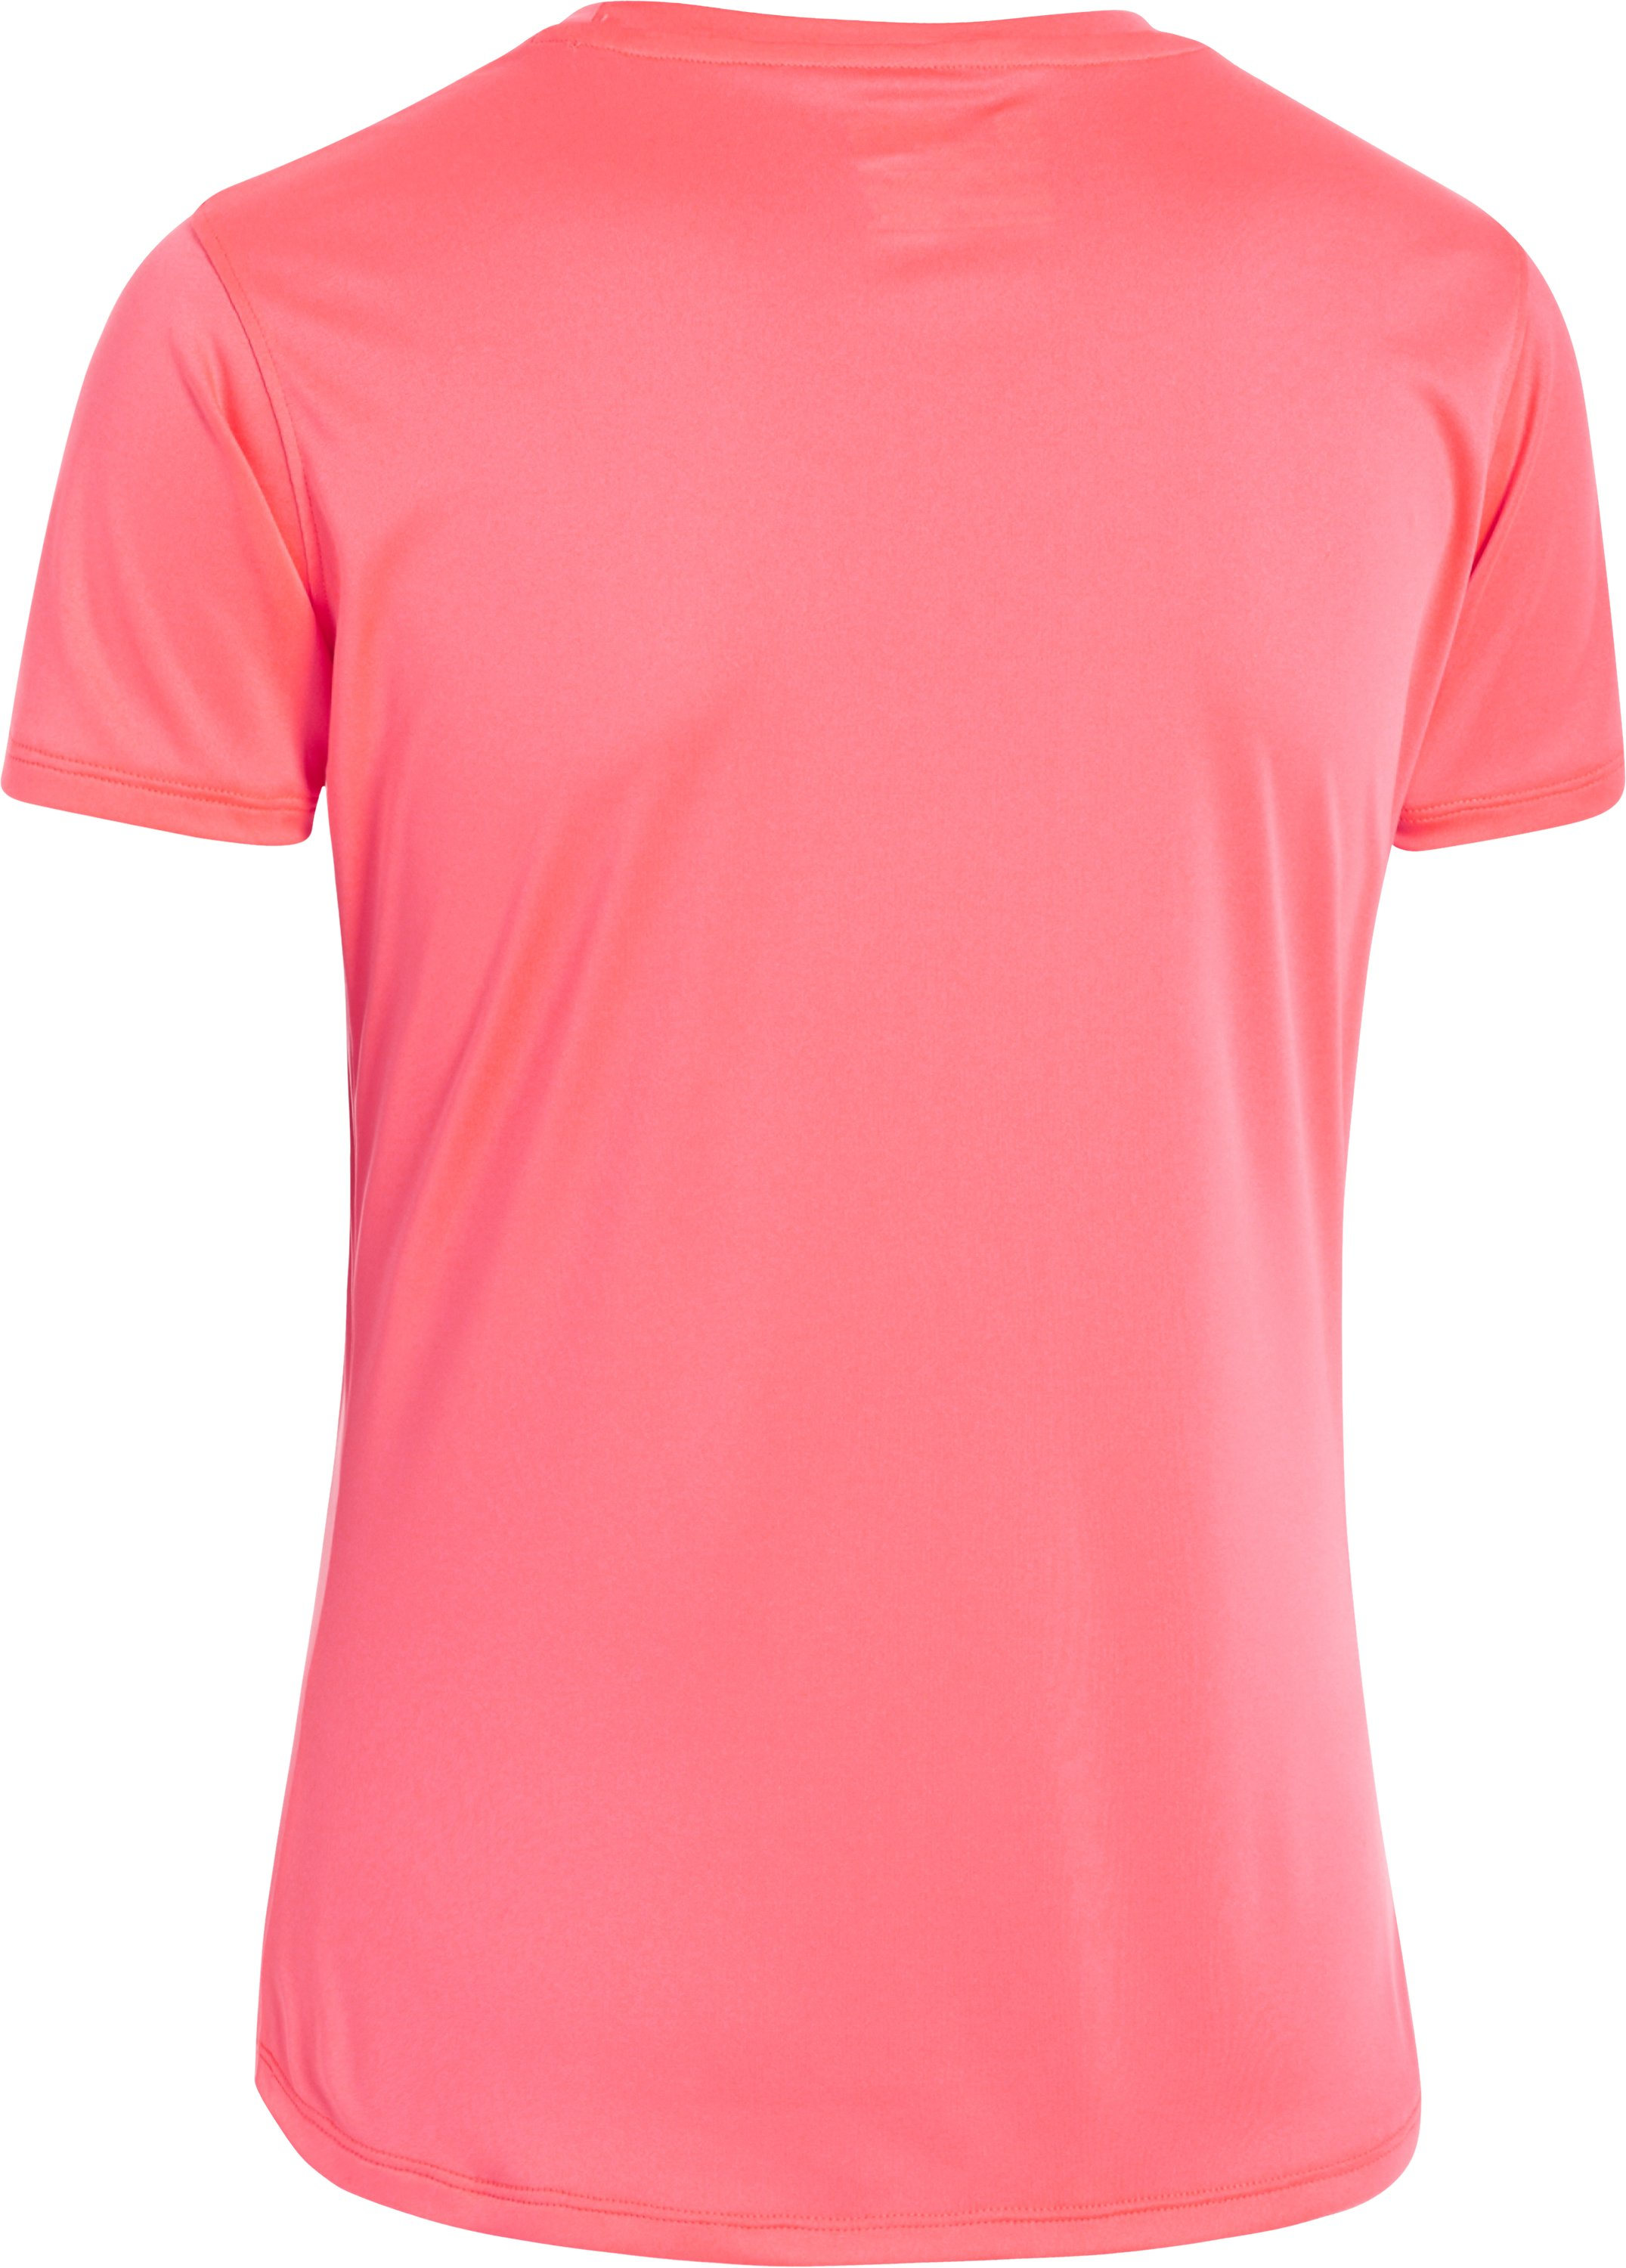 Girls' UA Secretsee Short Sleeve, BRILLIANCE